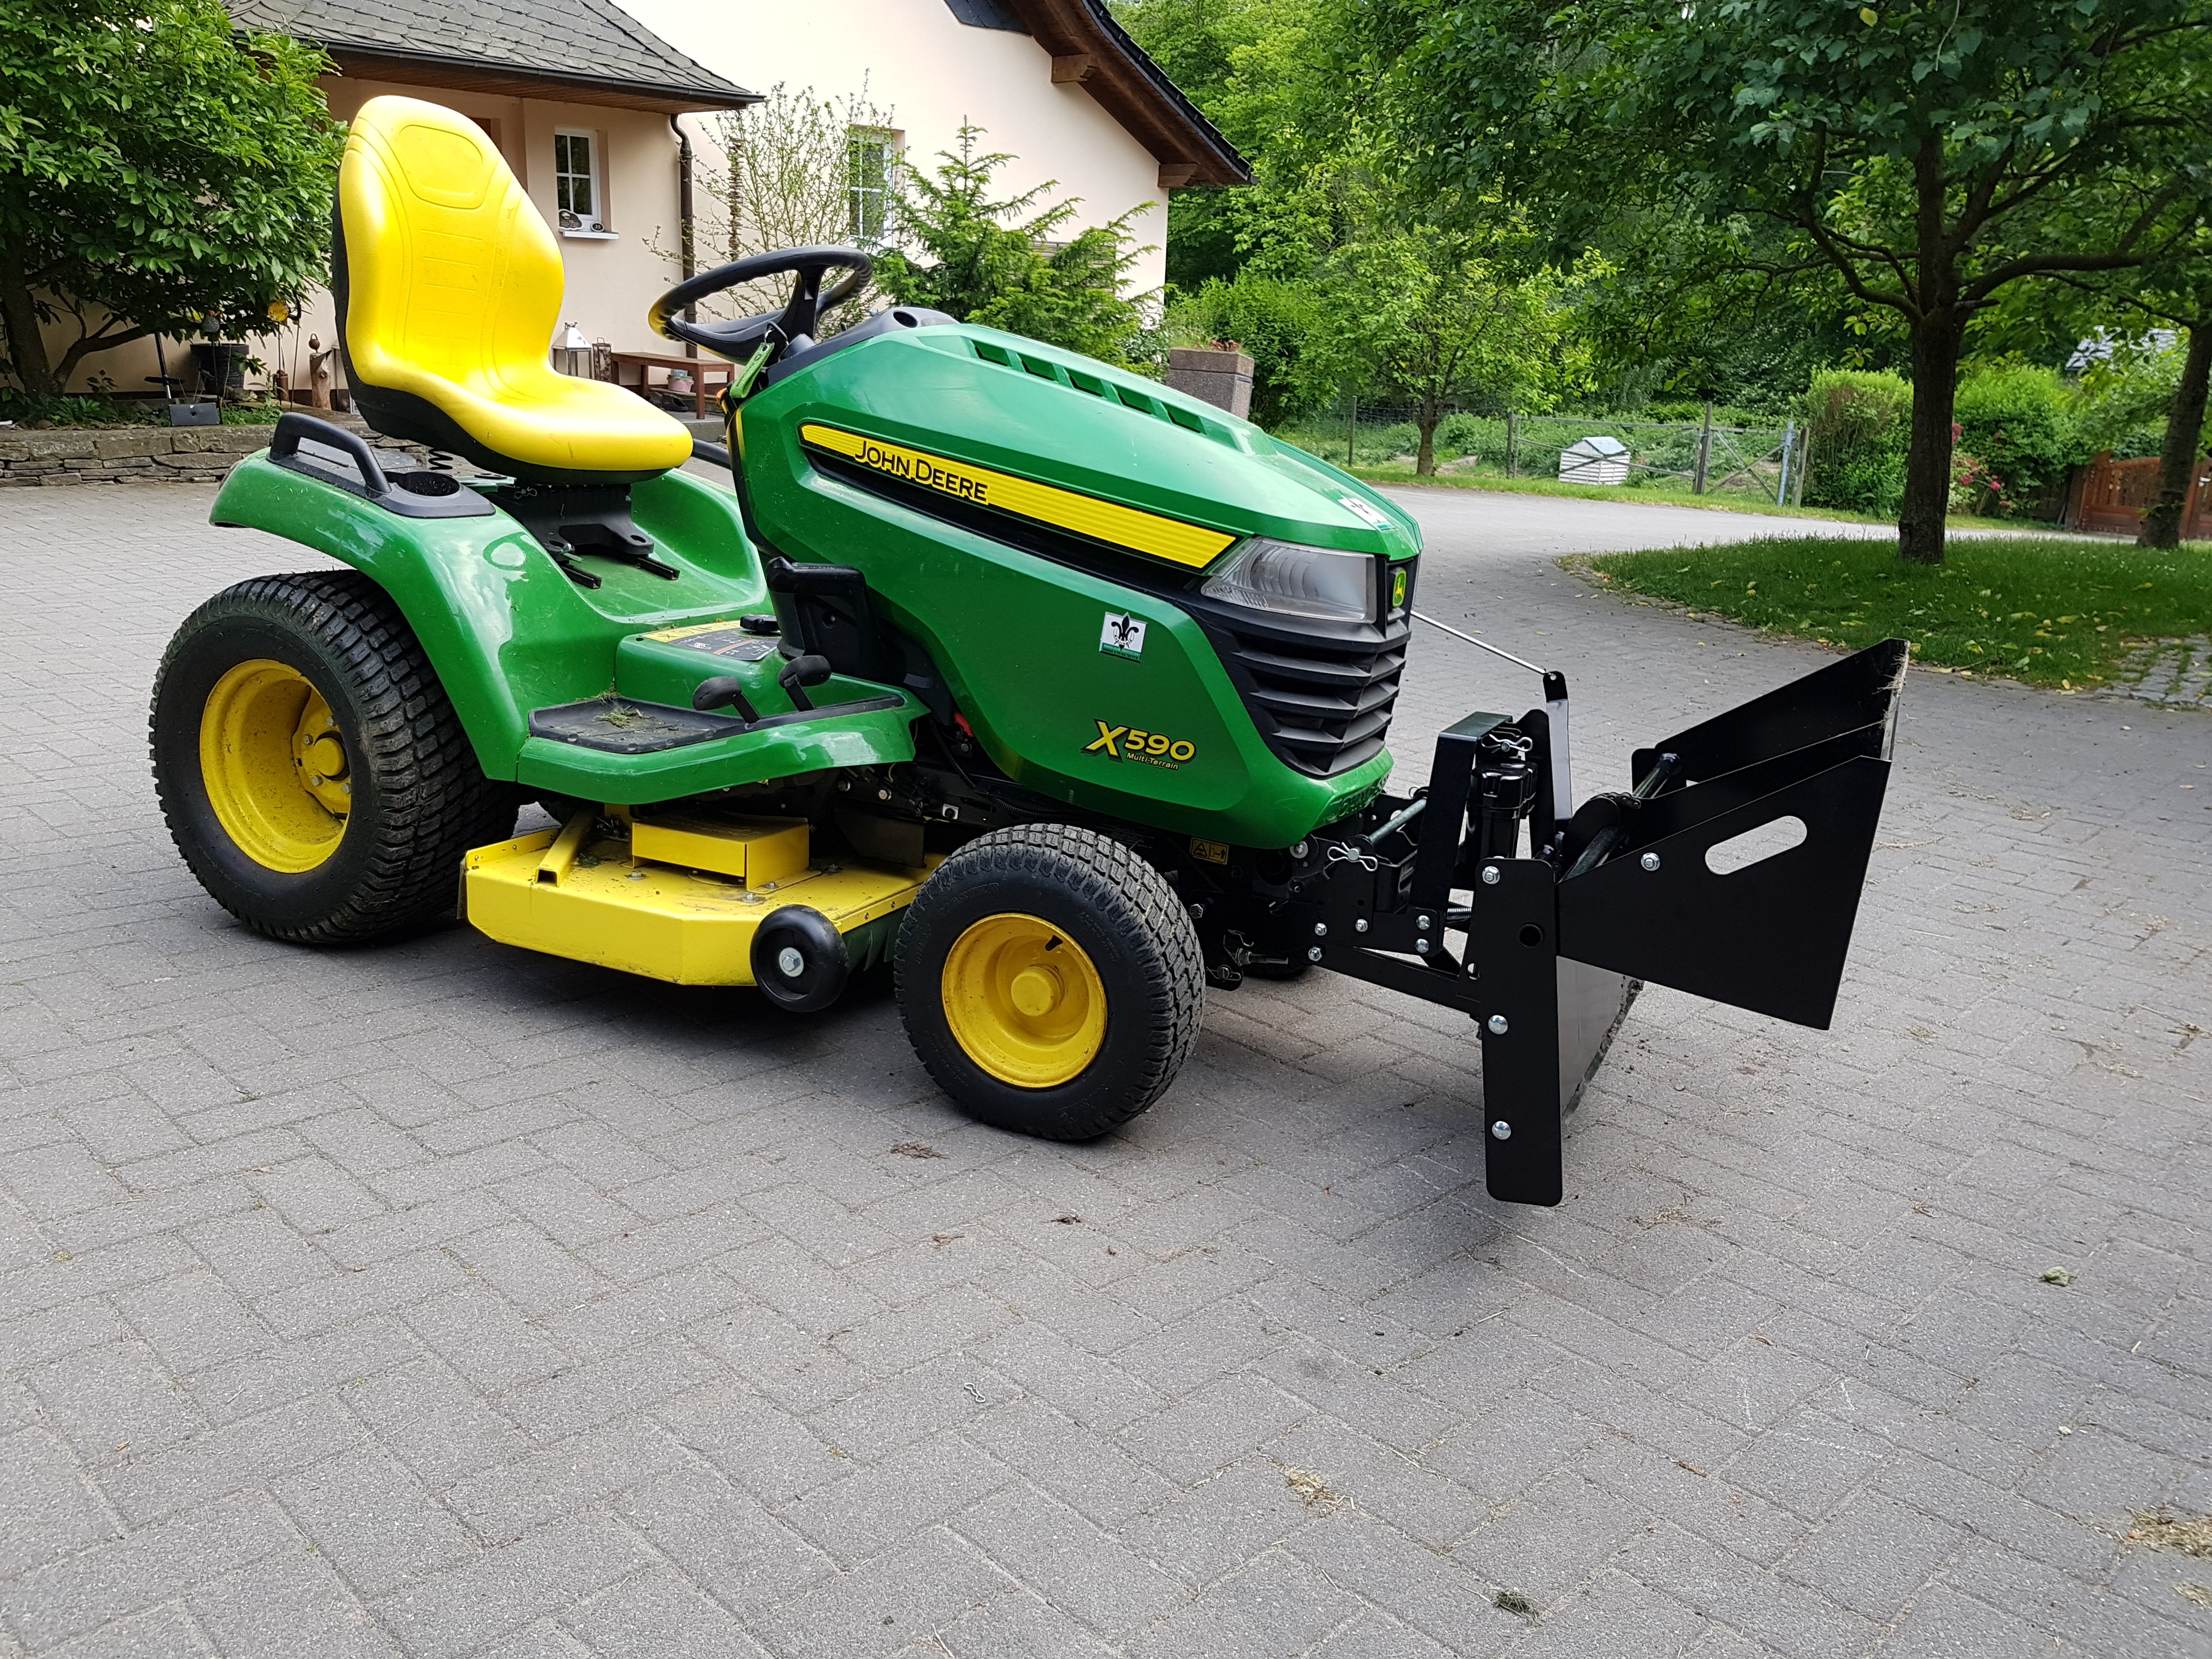 Sterling John Deere John Deere Tractor Shovel John Deere X350 Bagger Review 2017 John Deere X350 Reviews houzz-02 John Deere X350 Reviews